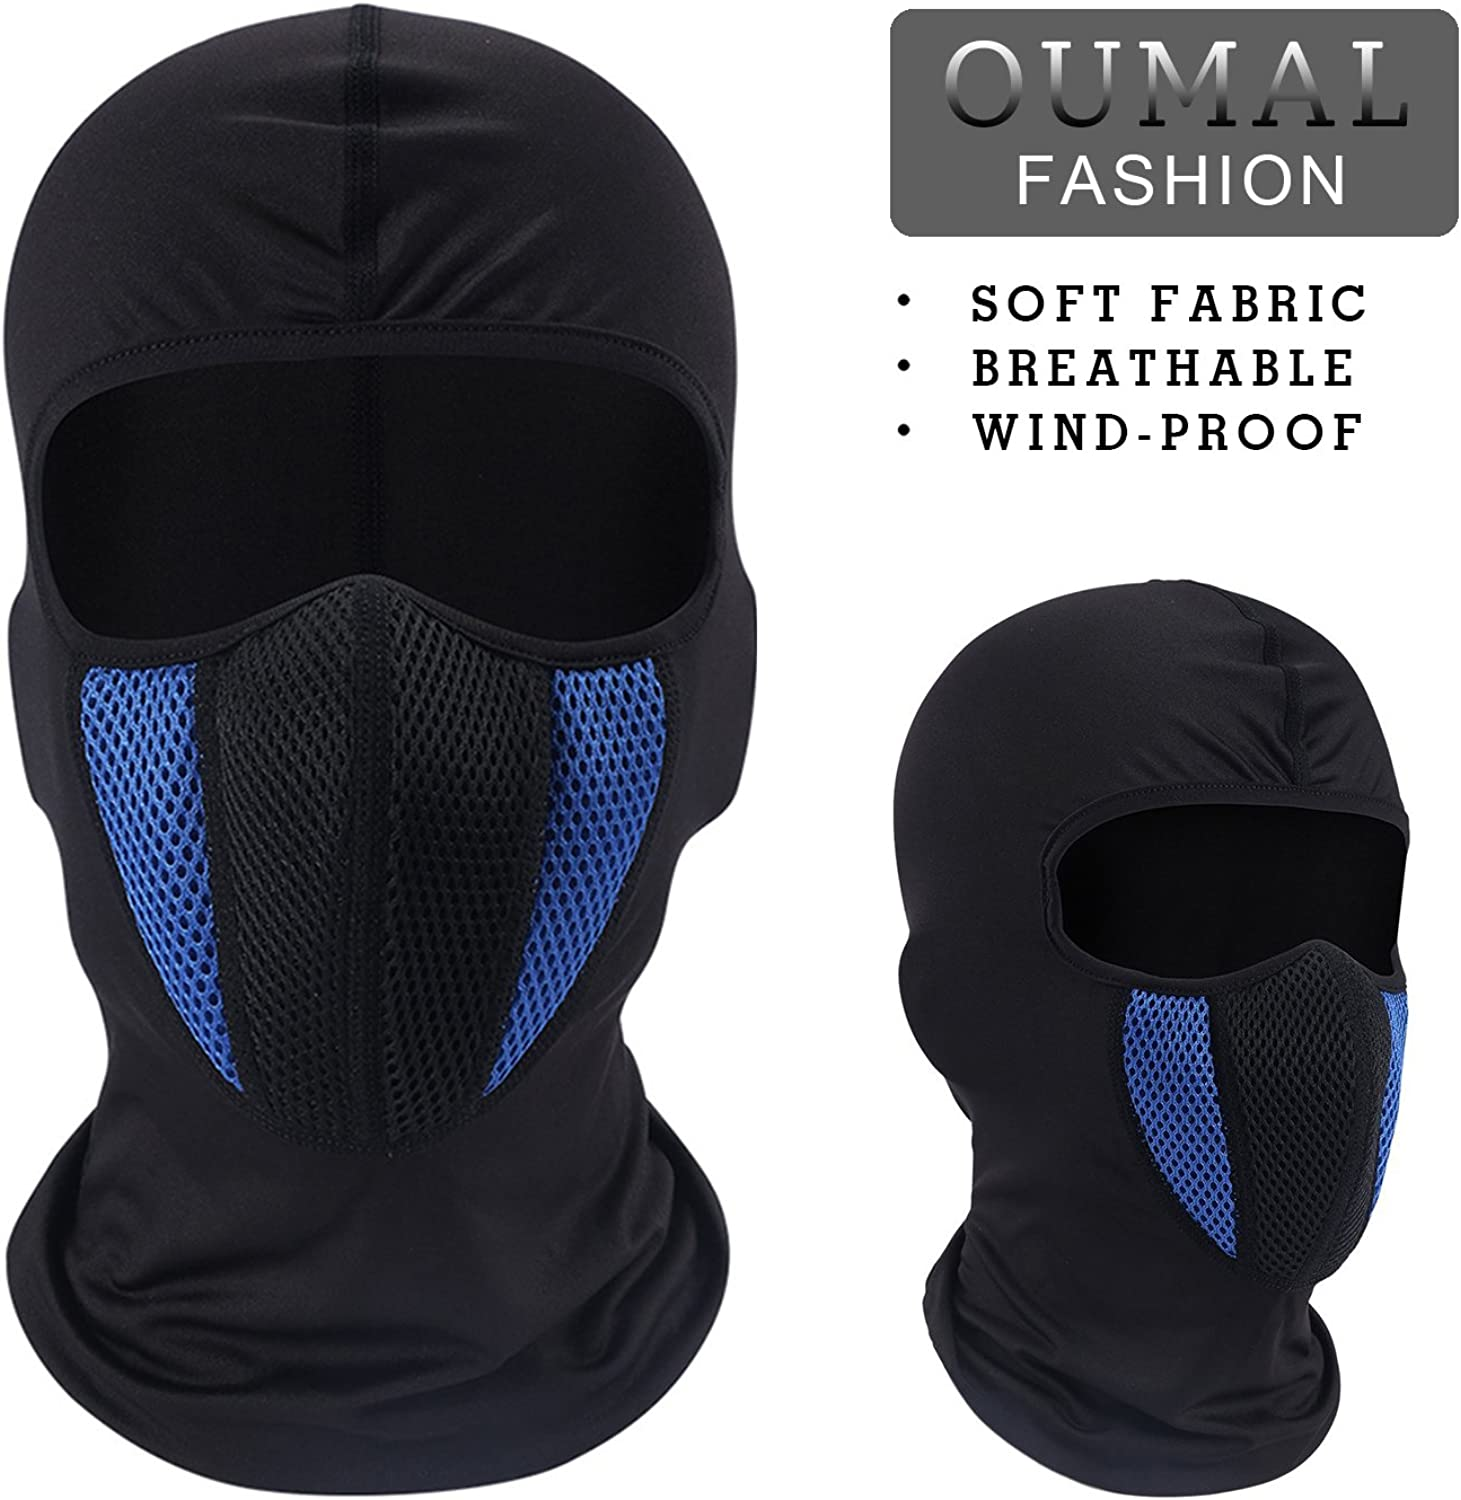 (blueee)  Motorcycle Face Mask Windproof Cycling Mask Breathable Running Balaclava Hood for Men Women